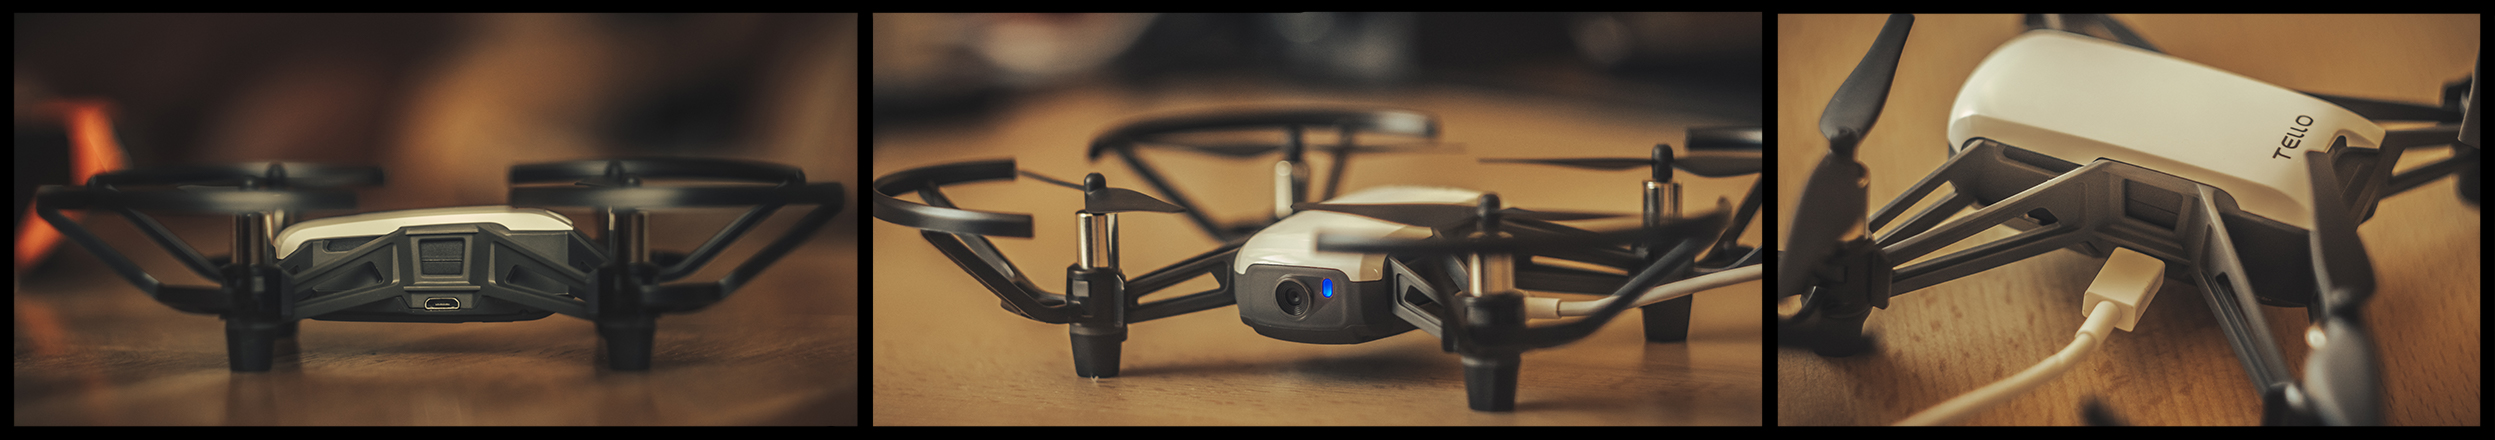 Hello Tello-Review | DJI FORUM